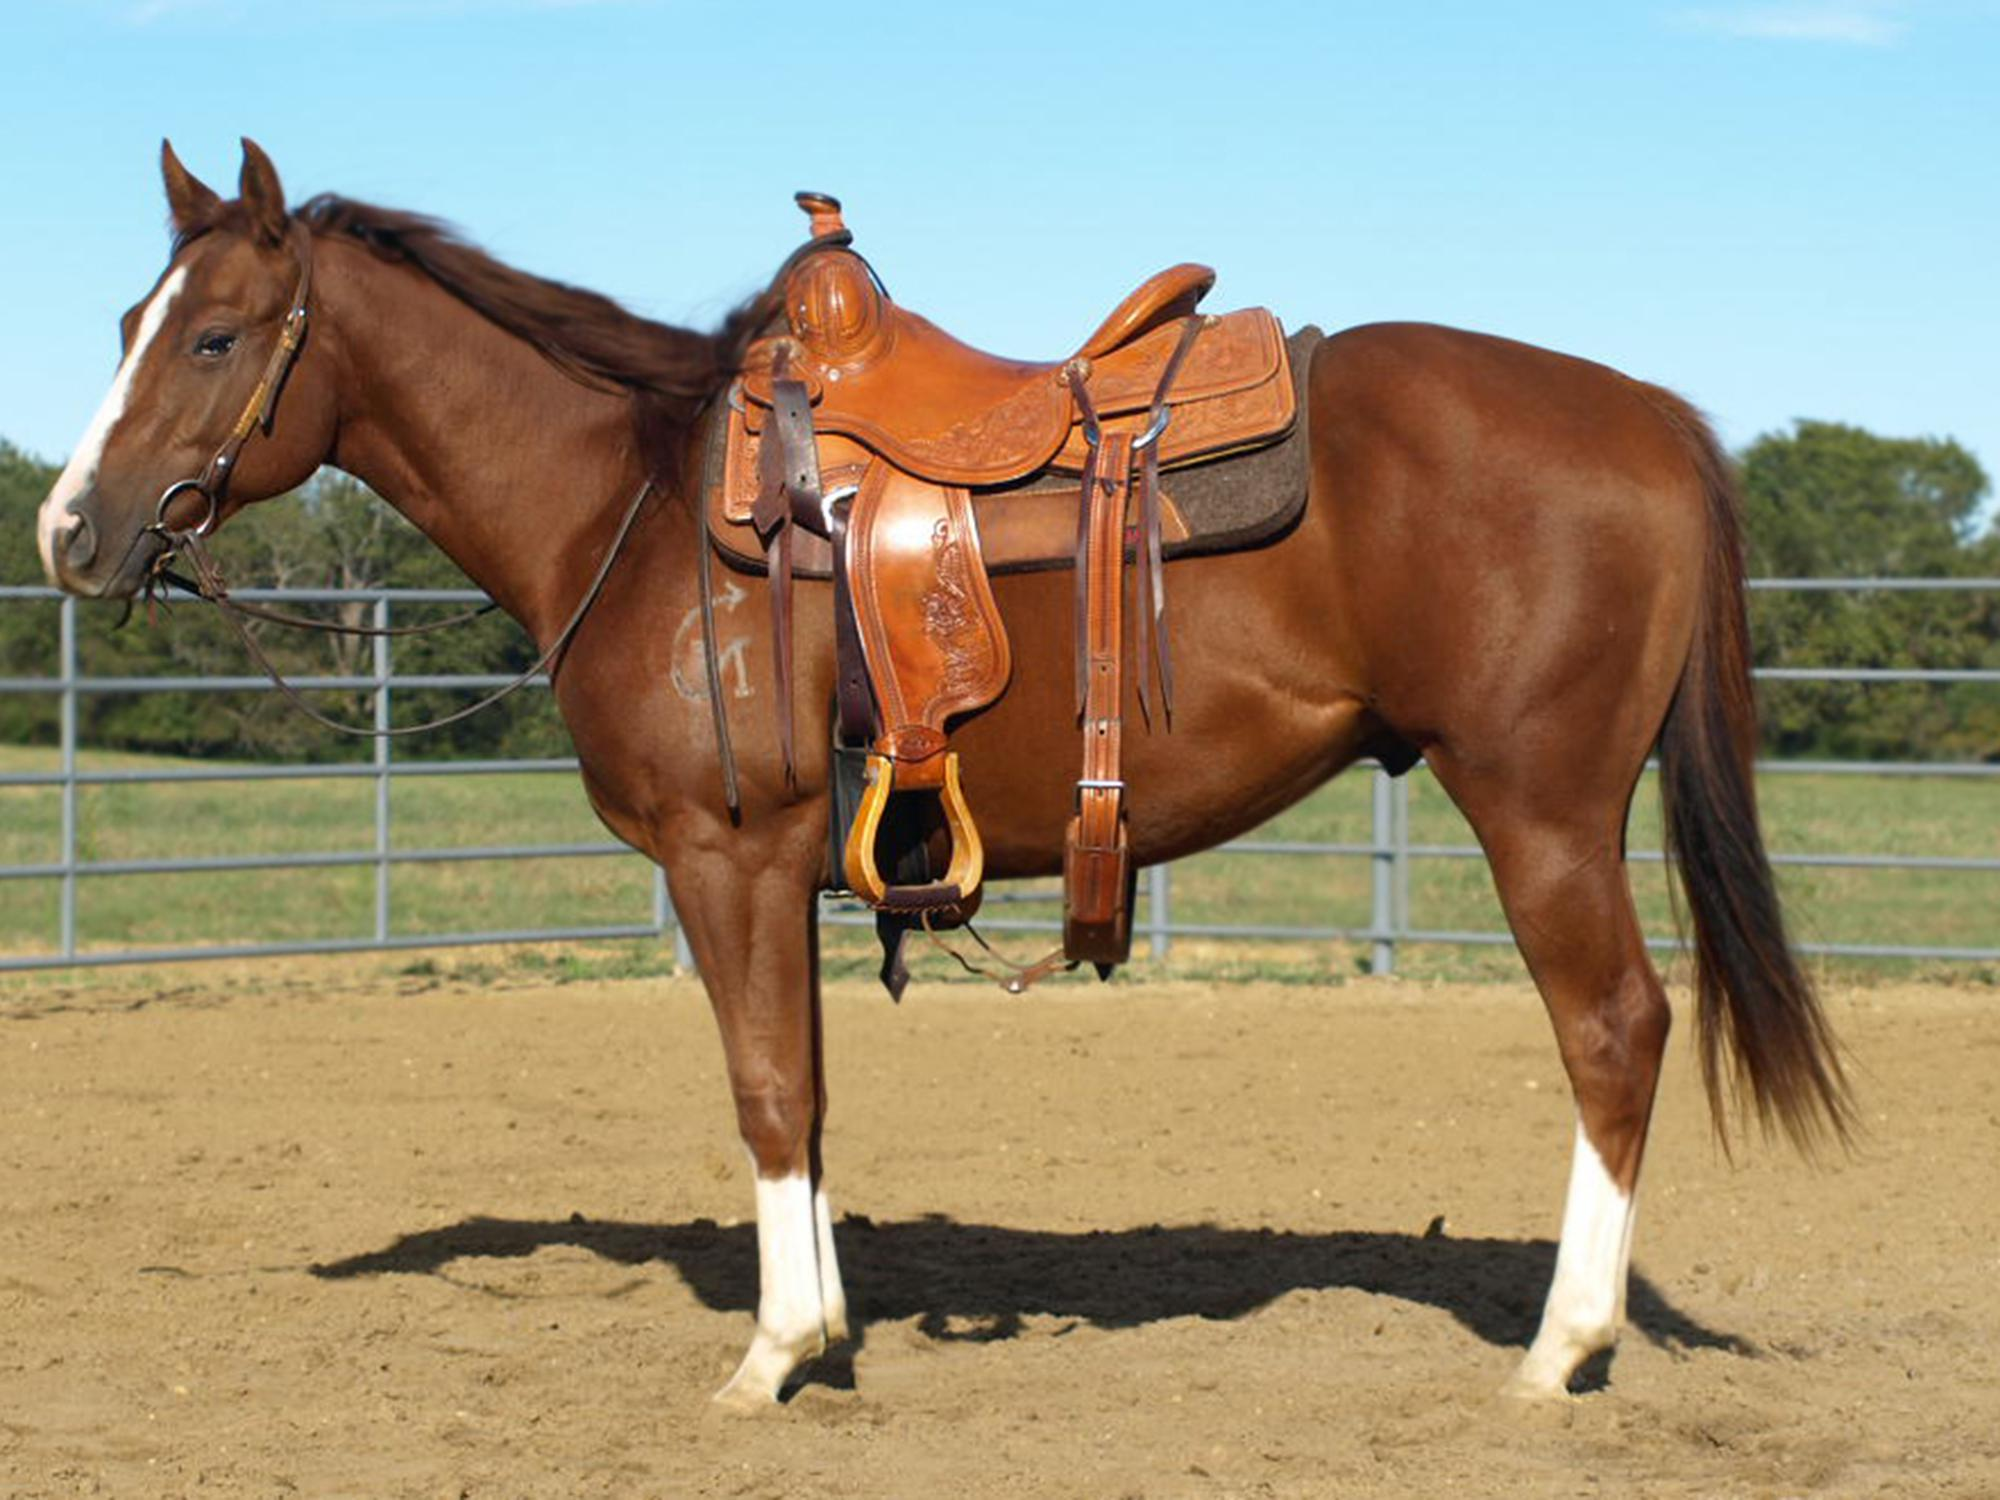 The side view of a bridled and saddled brown horse inside a corral.